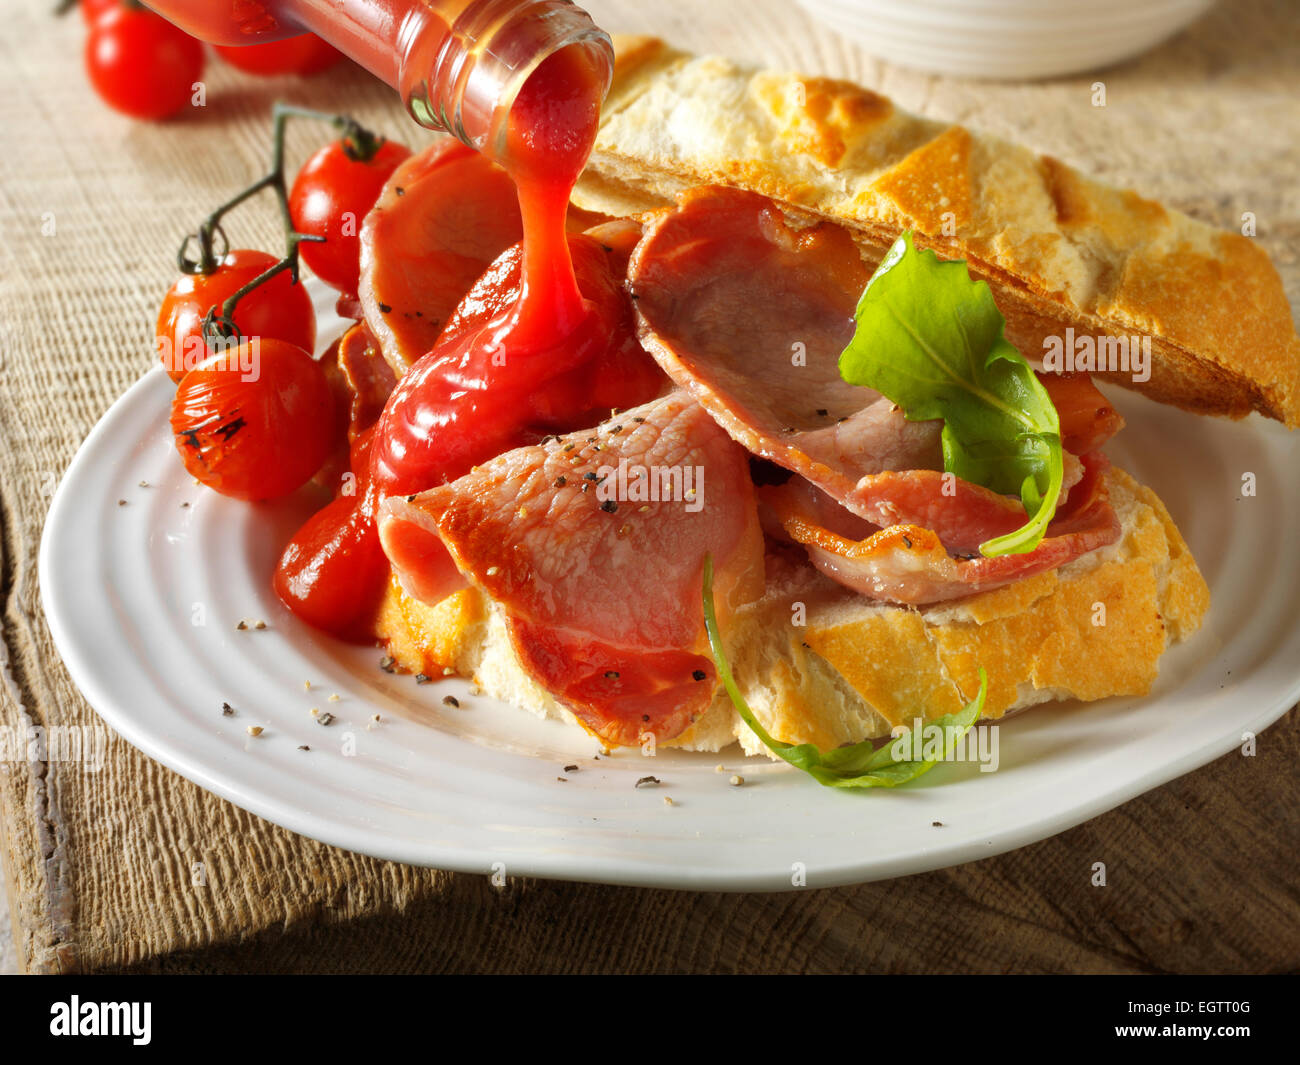 Bacon sandwich with tomato ketchup being added - Stock Image